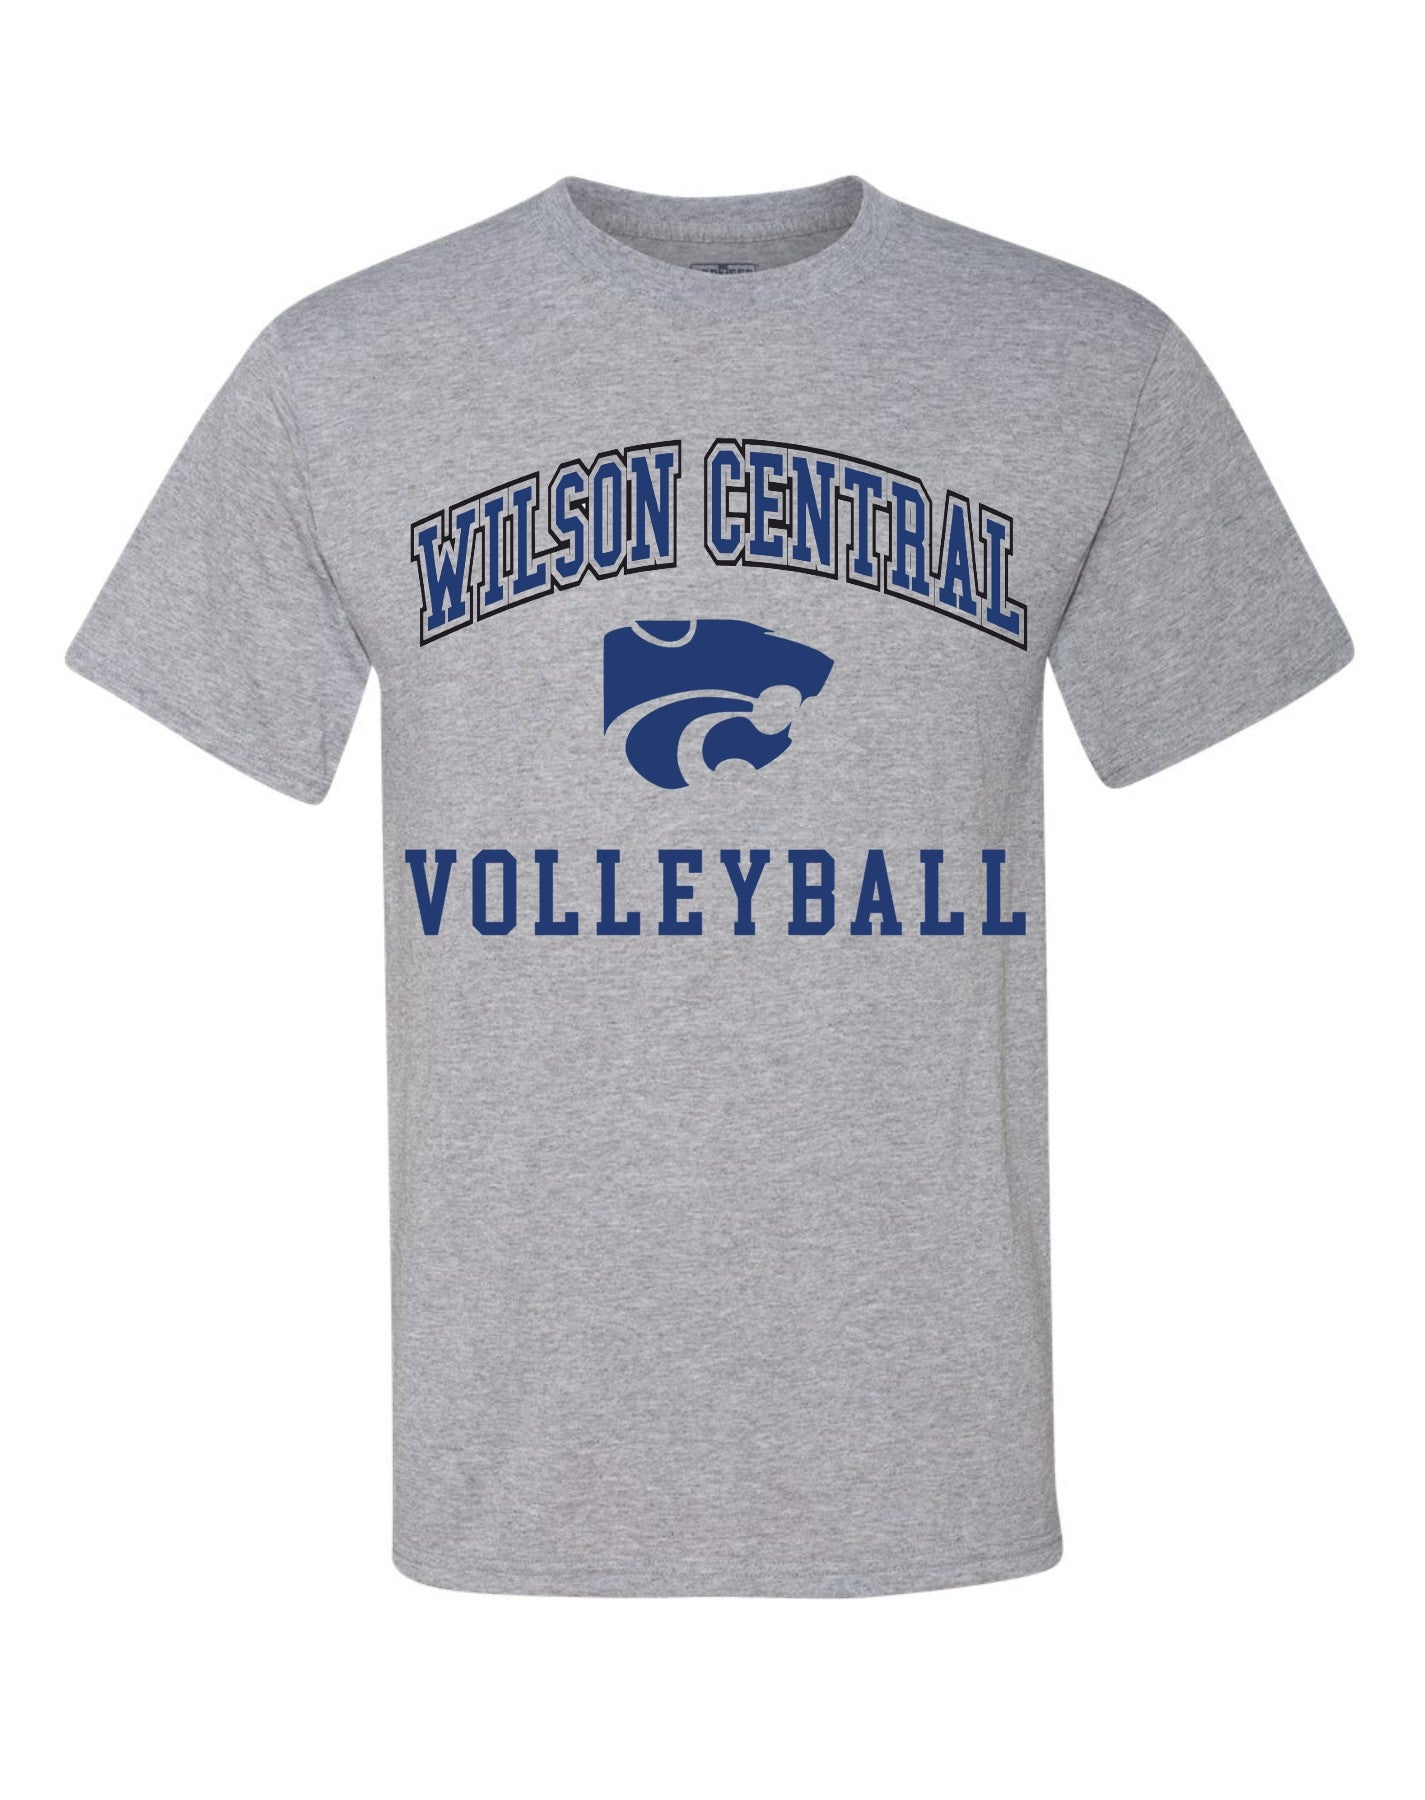 Wilson Central Volleyball - Grey Short Sleeve